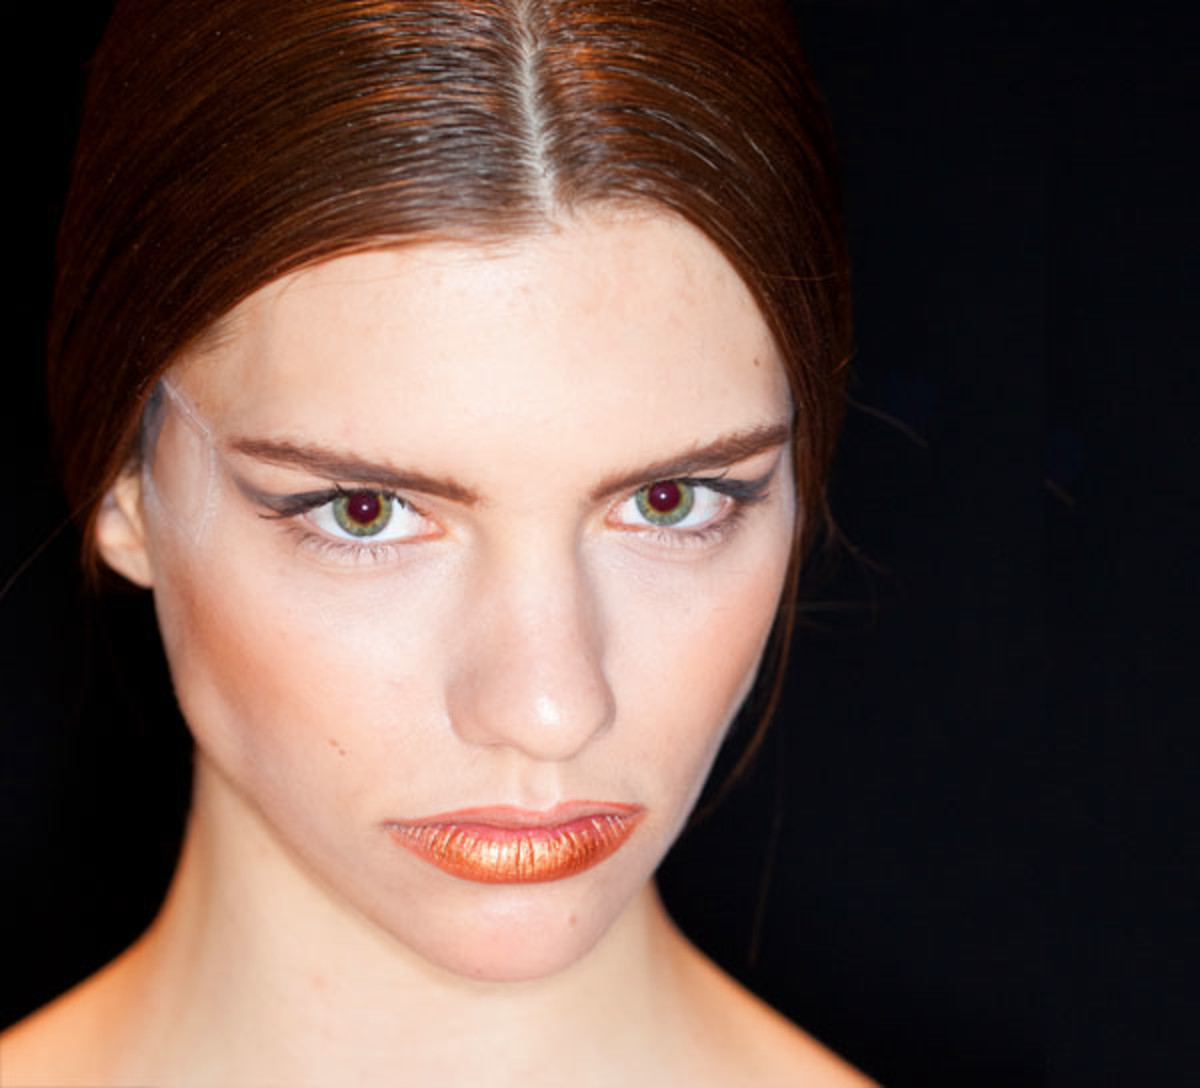 Bedwelming MFW Backstage Beauty: Facelift Tape at Melissa Nepton - Beautygeeks &HP27